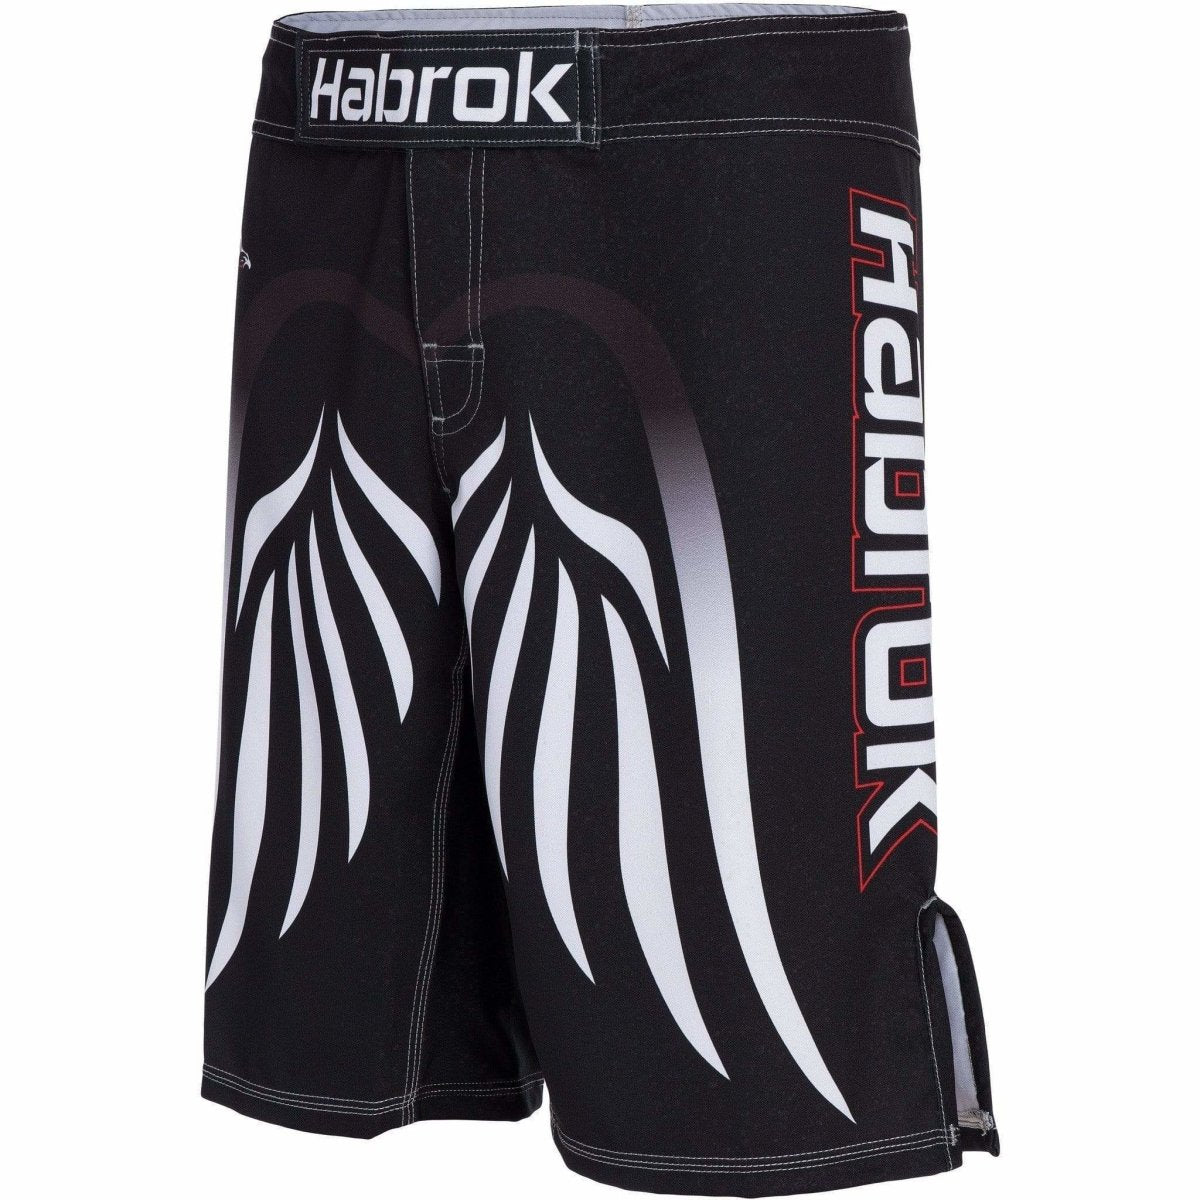 Habrok Shorts S / BLACK Elite Grappling Shorts No Gi & Grappling Shorts | Men | Habrok Jiu Jitsu and MMA Gear